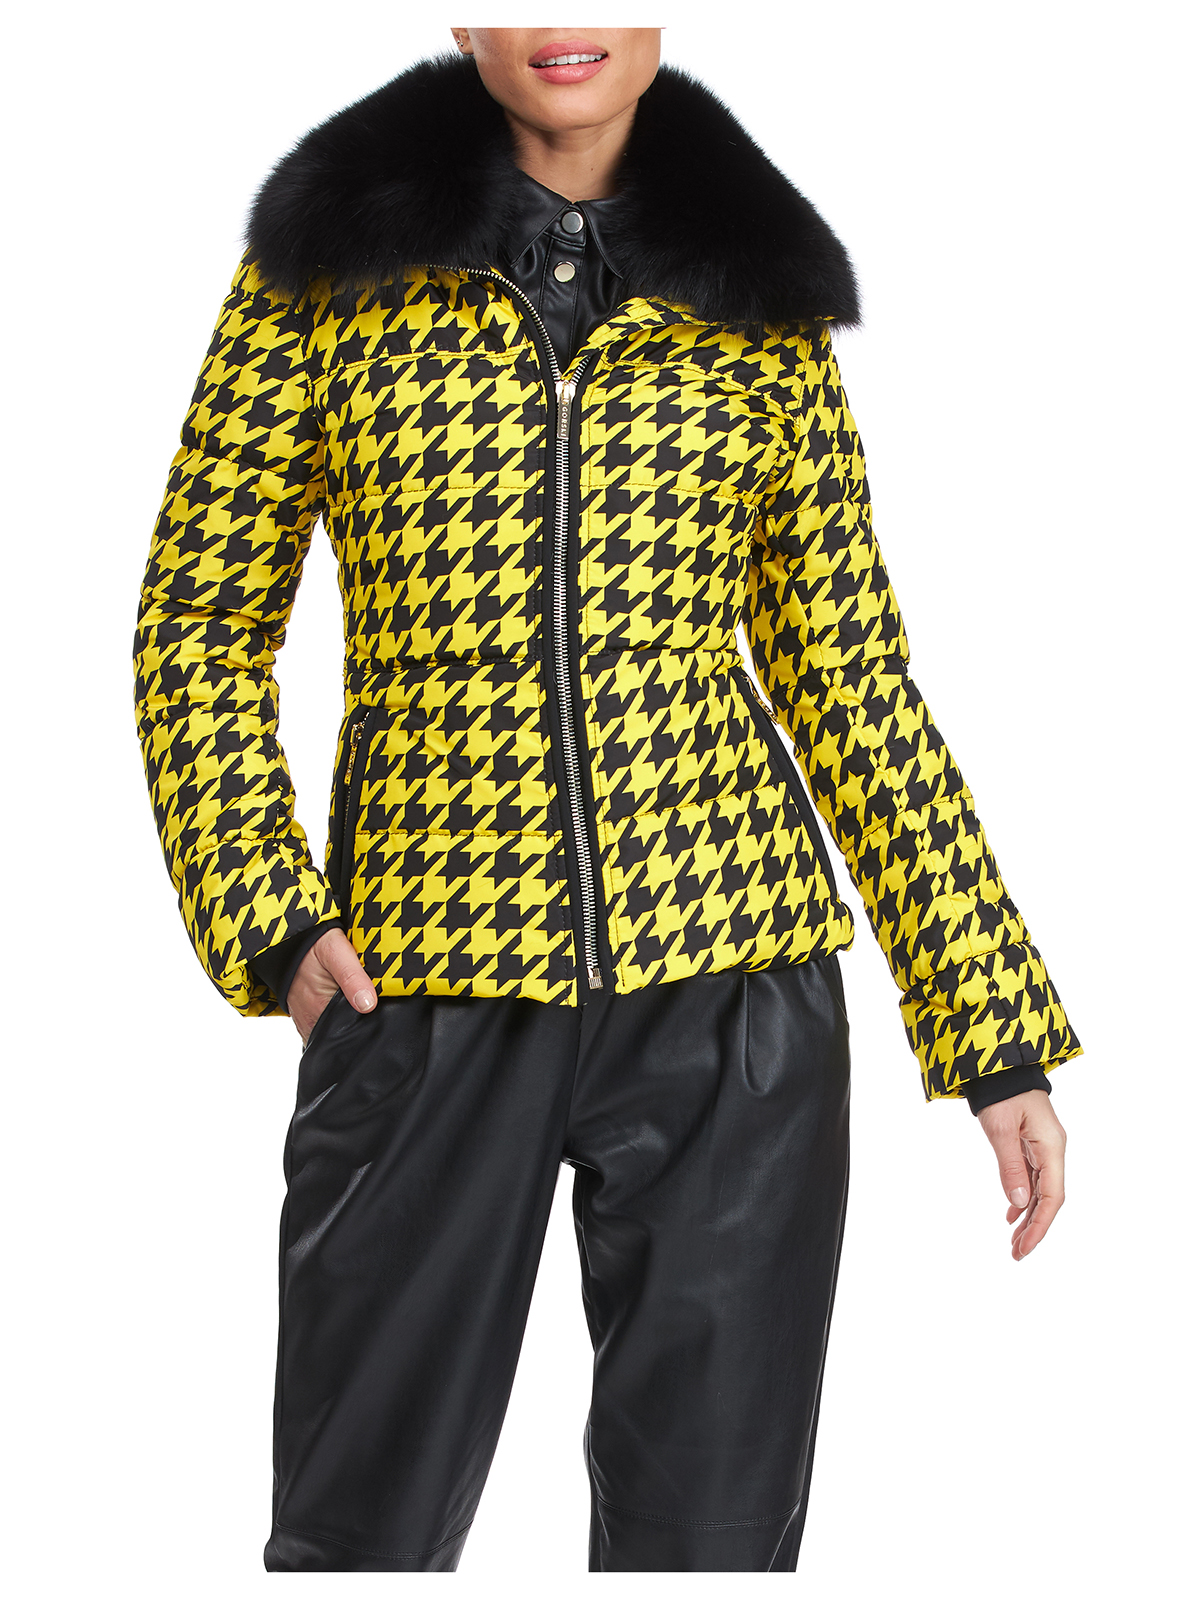 Gorski Woman's Apres-Ski Yellow and Black Houndstooth Jacket with Detachable Fox Fur Collar